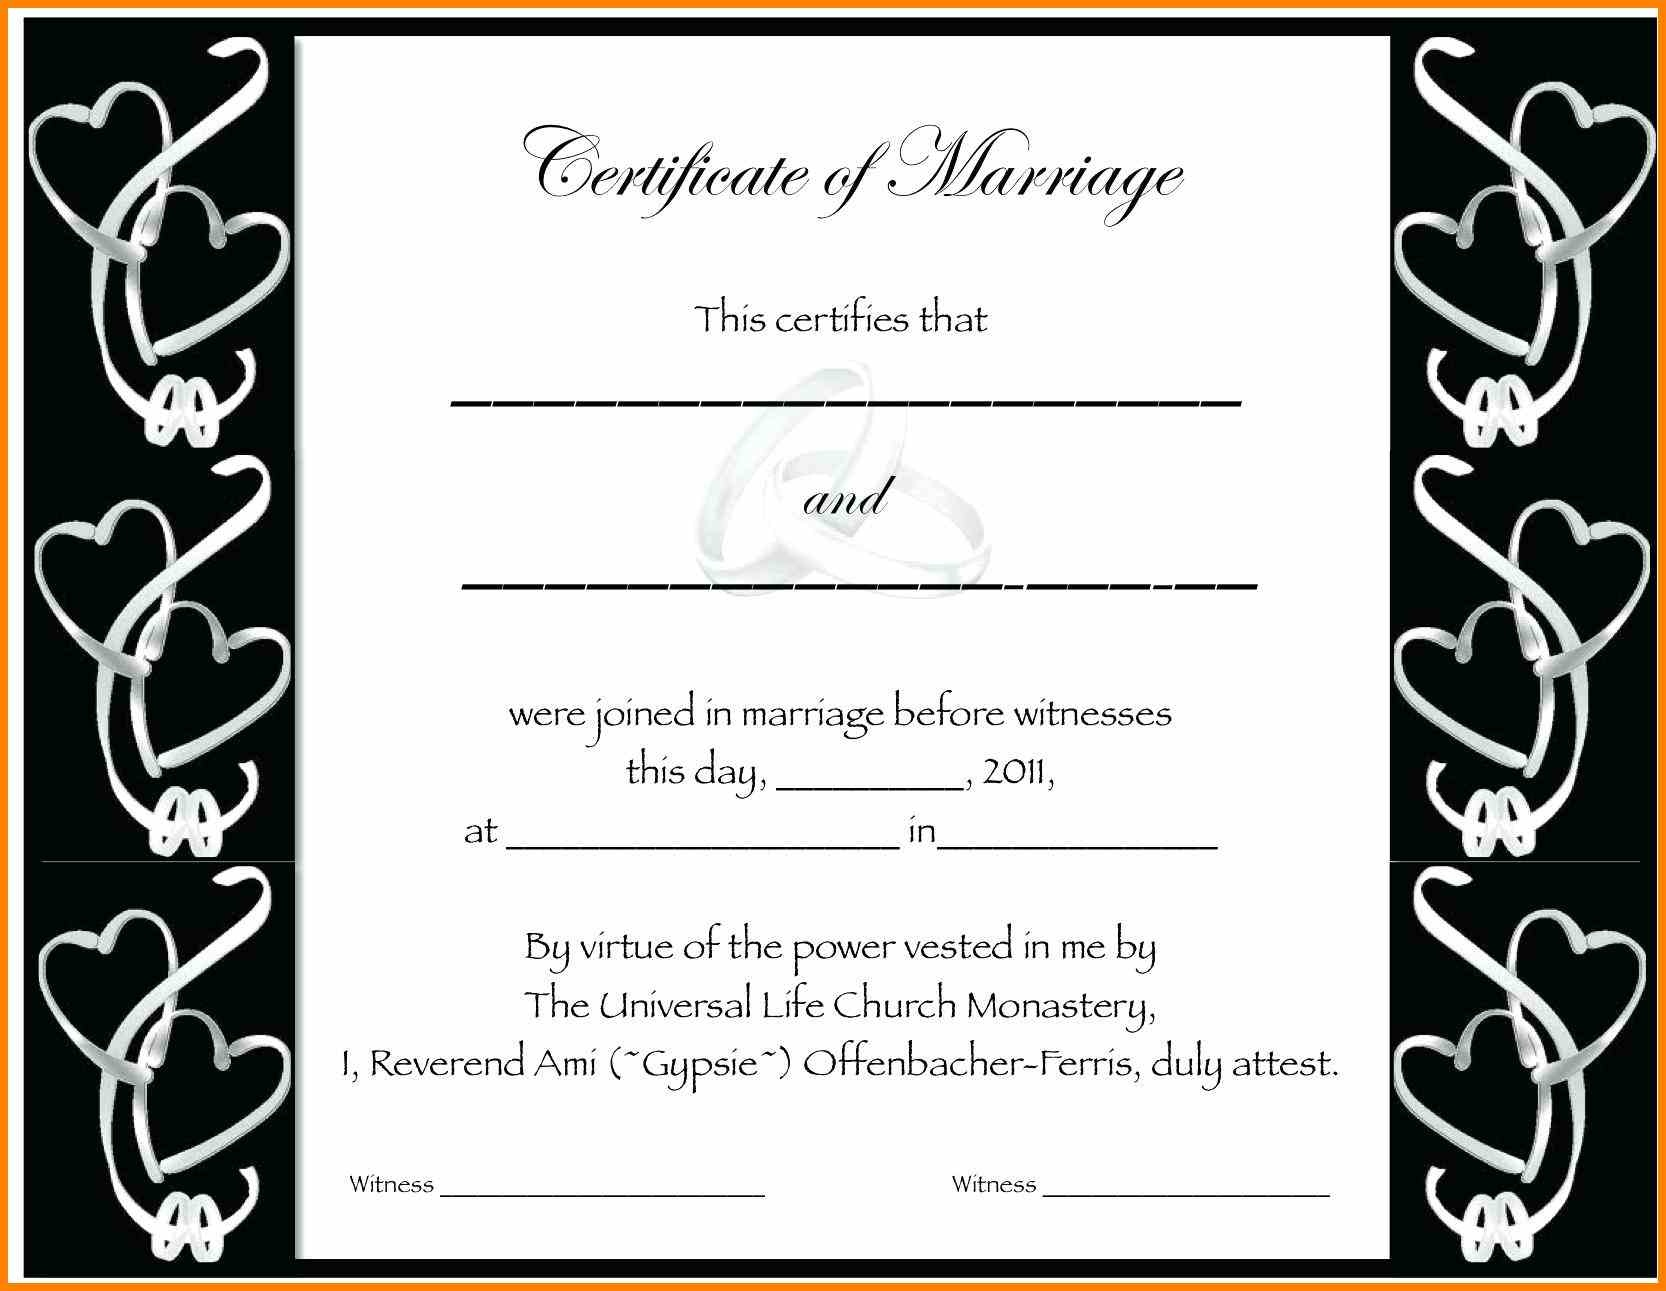 5+ Fake Marriage Certificate Template Free | Lbl Home Defense Products - Fake Marriage Certificate Printable Free